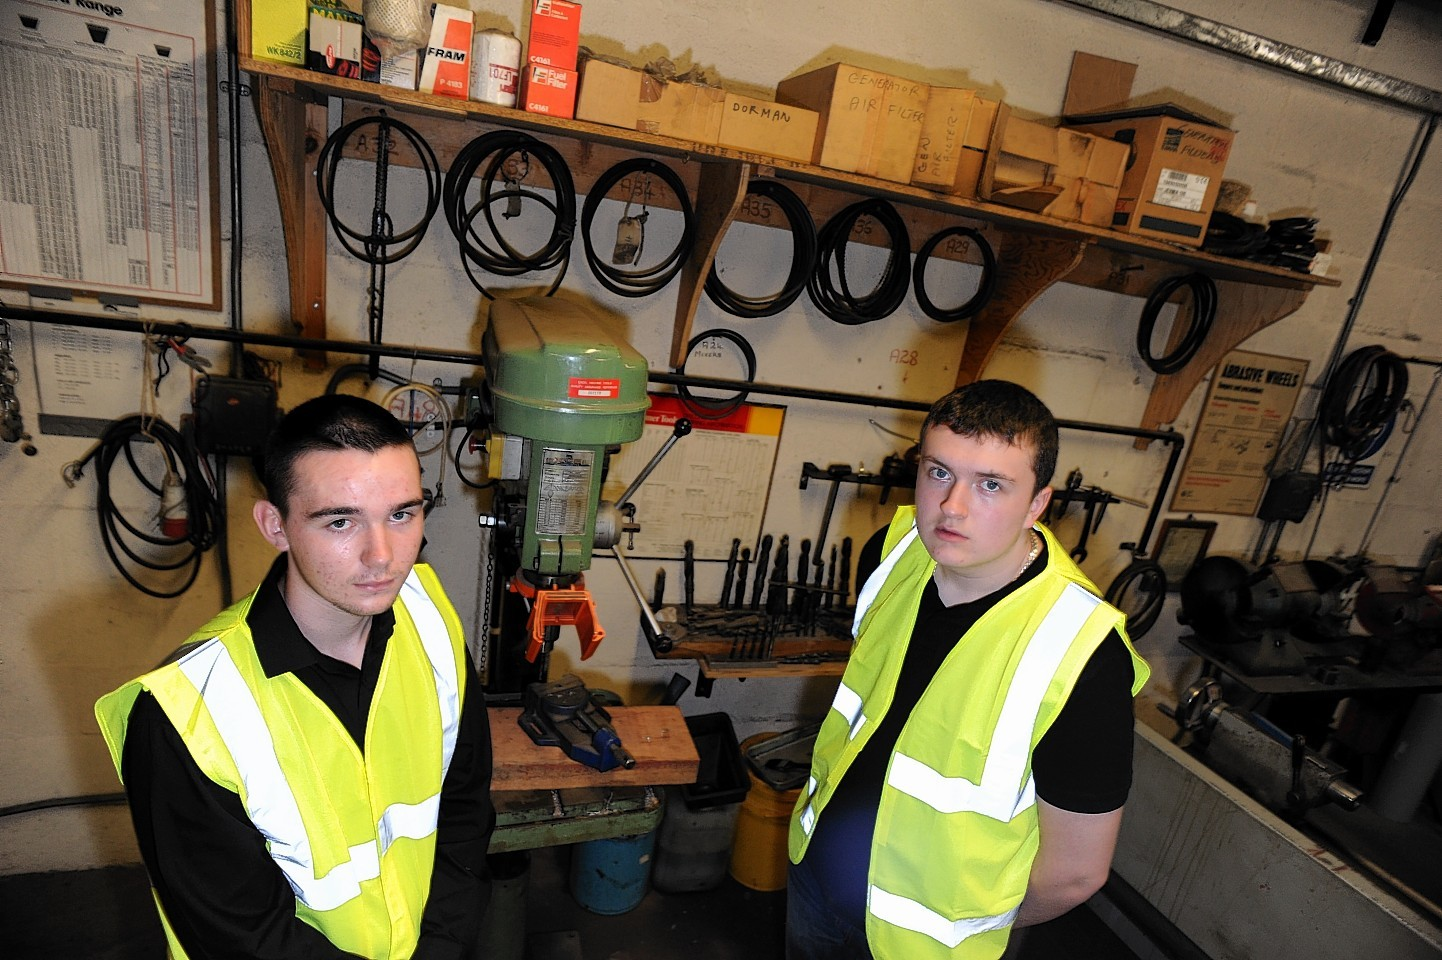 Liam Shand and Callum Watt are the first to take part in a new work skills scheme